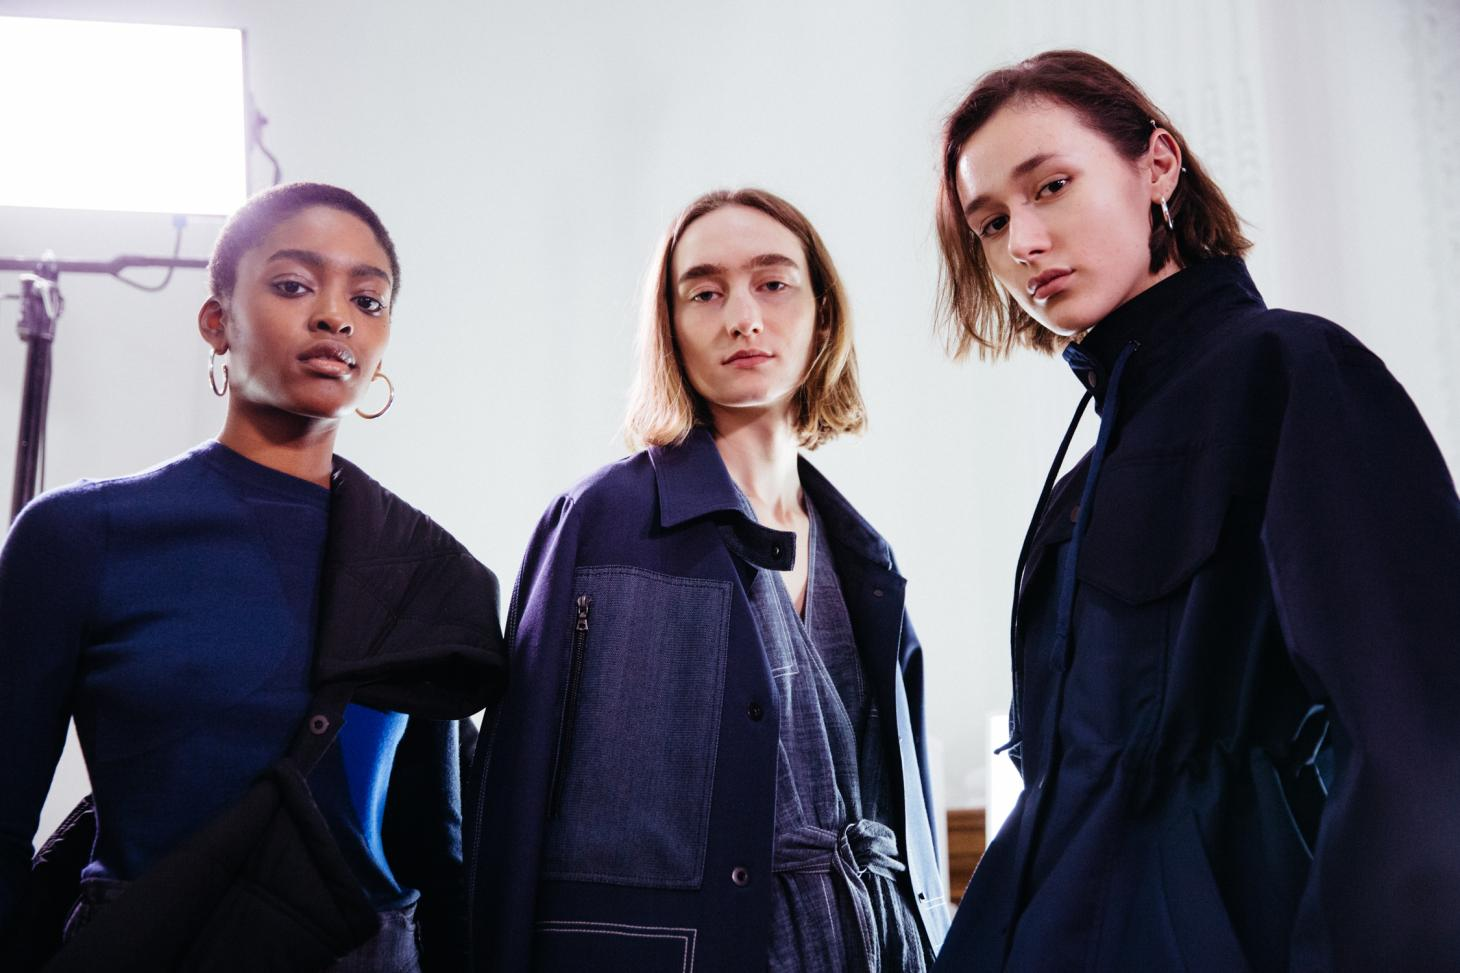 Colovos winner of the Woolmark Prize 2019